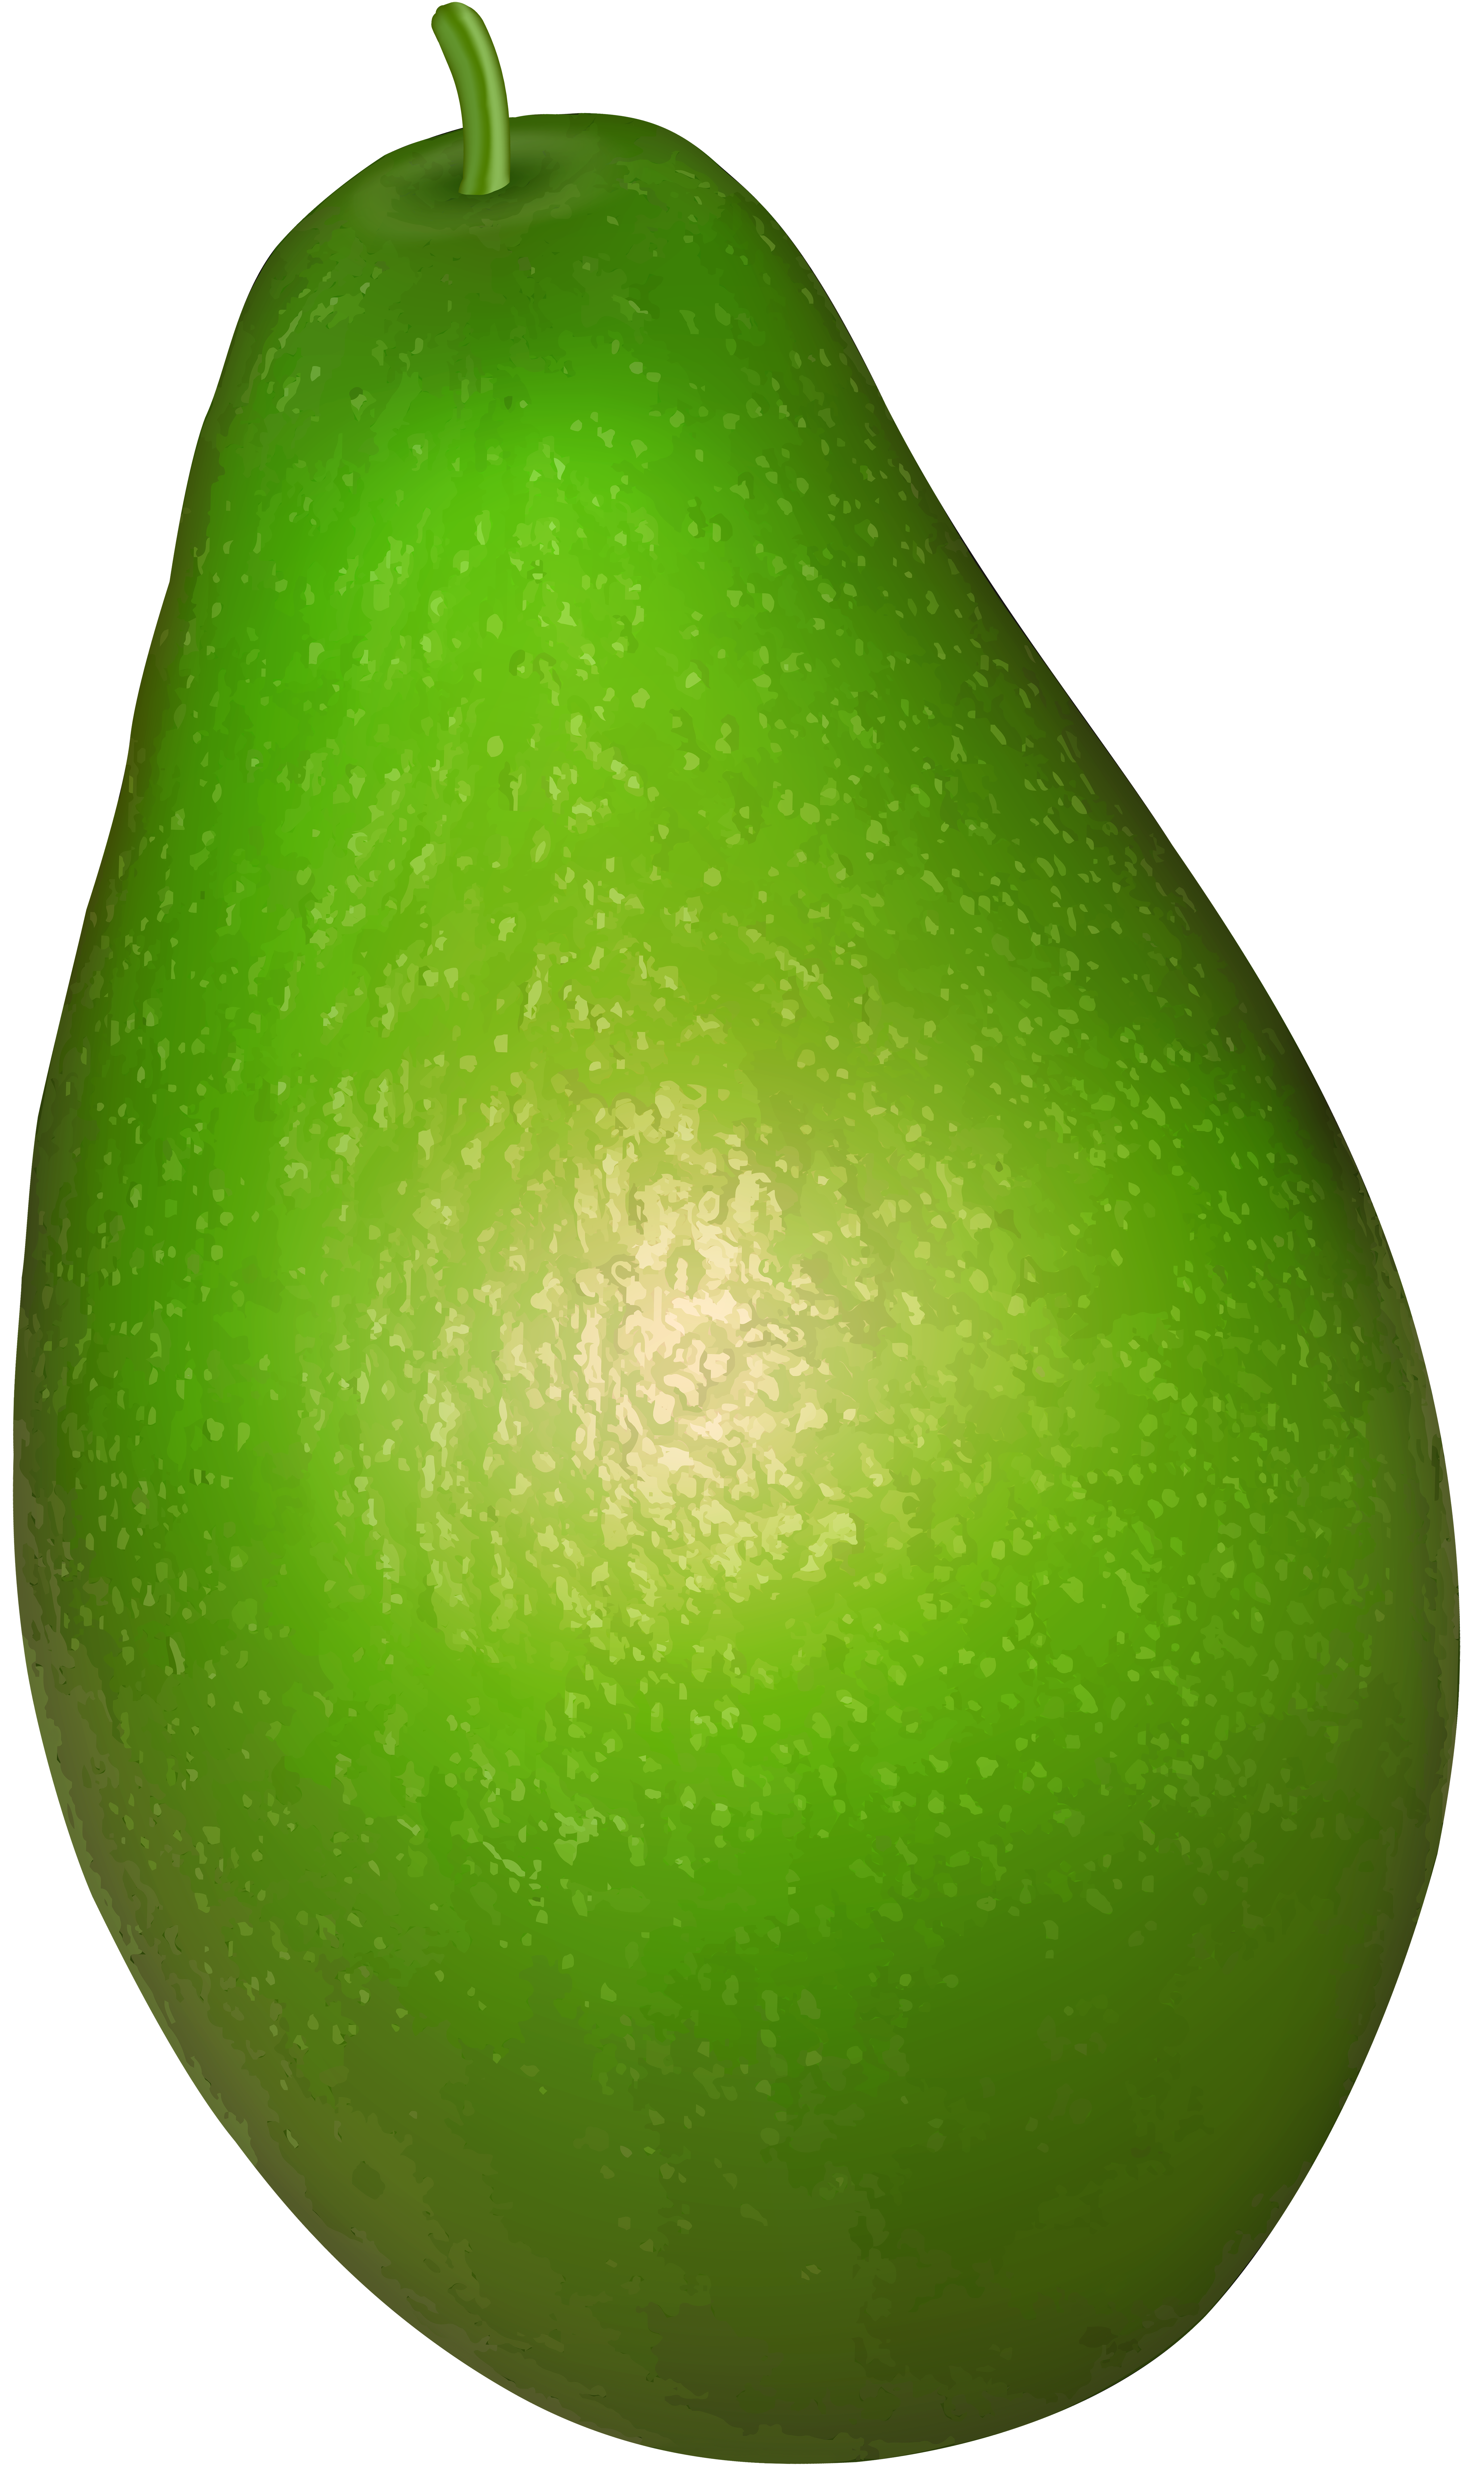 Avocado tree clipart png freeuse library Avocado Clipart at GetDrawings.com   Free for personal use Avocado ... png freeuse library